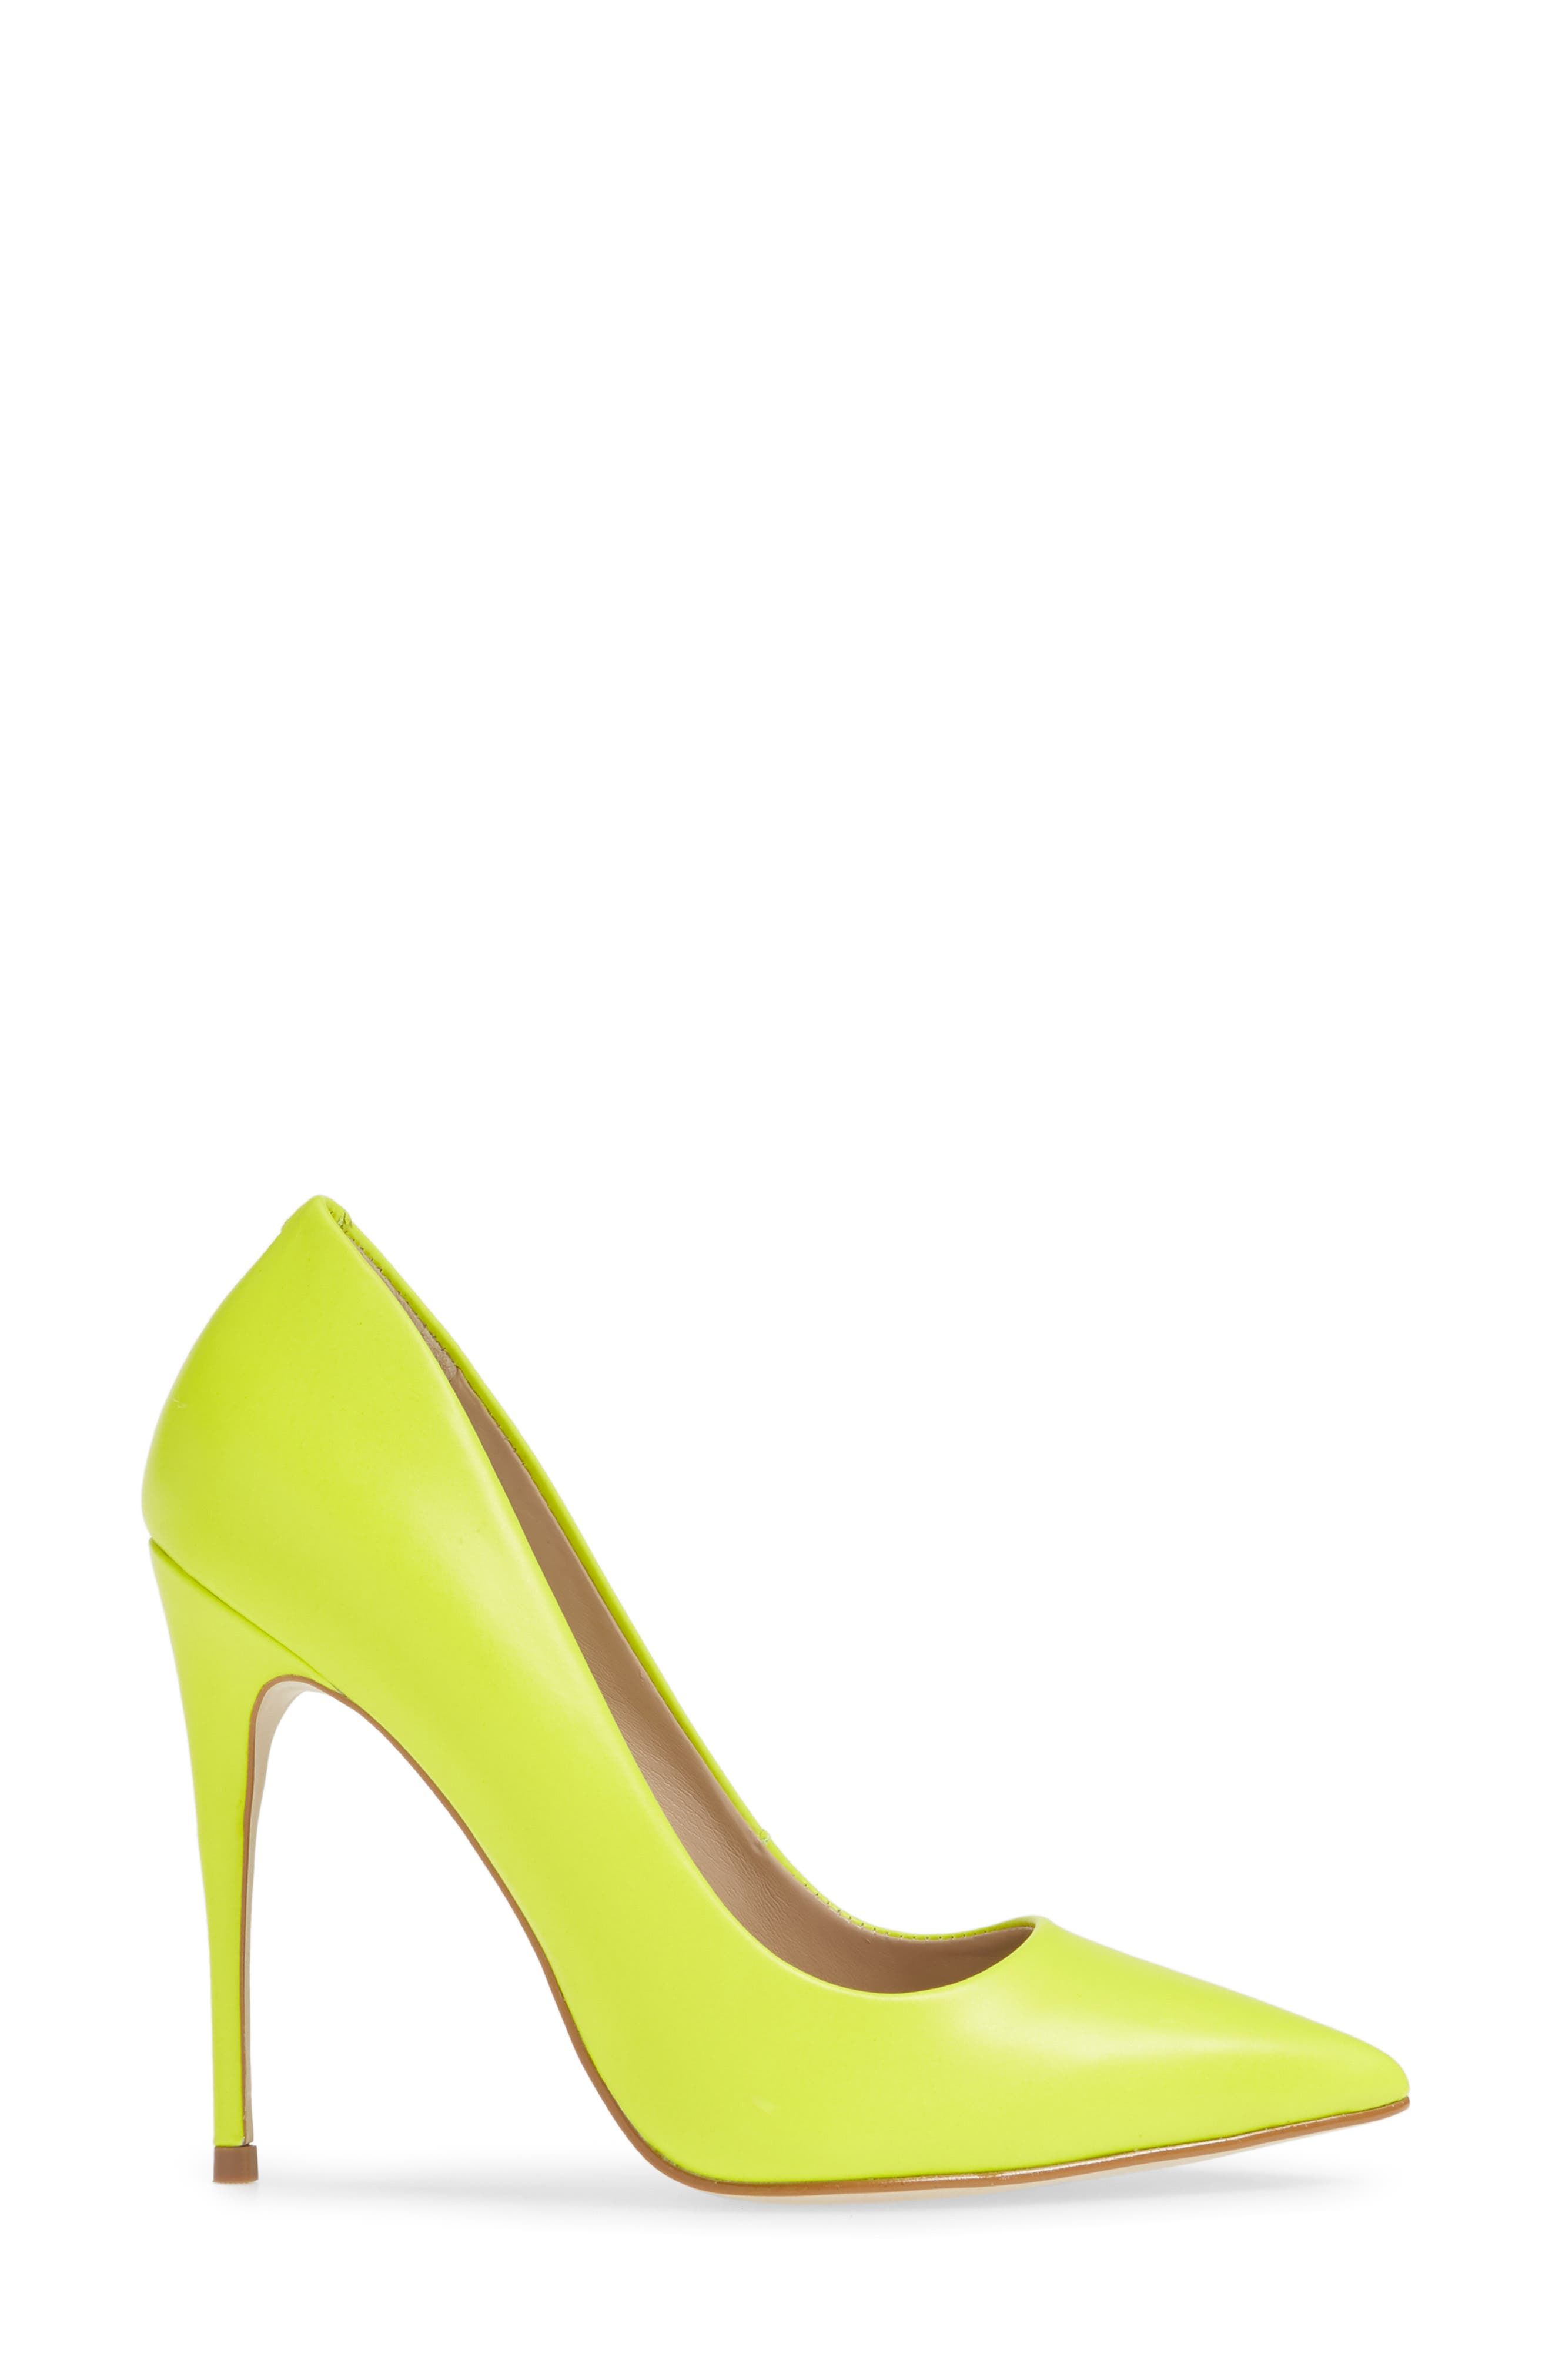 STEVE MADDEN, Daisie Pointy-Toe Pump, Alternate thumbnail 3, color, LIME